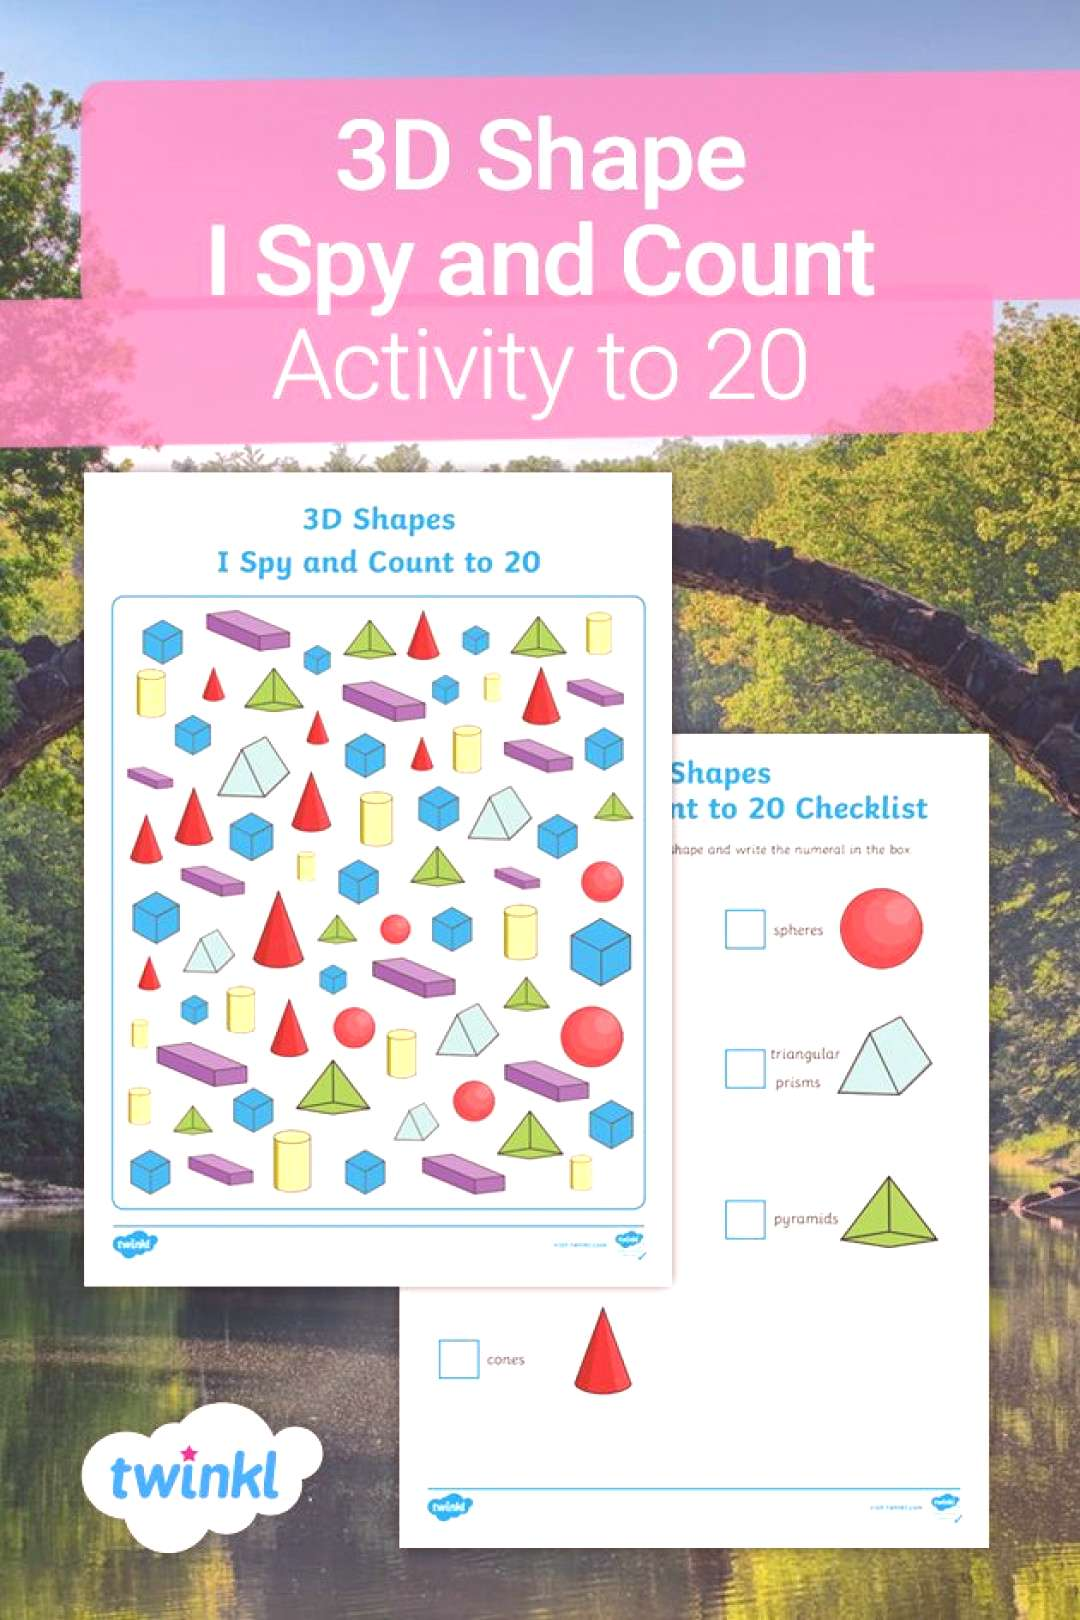 3D Shape I Spy and Count Activity to 20! This engaging 3D Shape I Spy and Count Activity is great